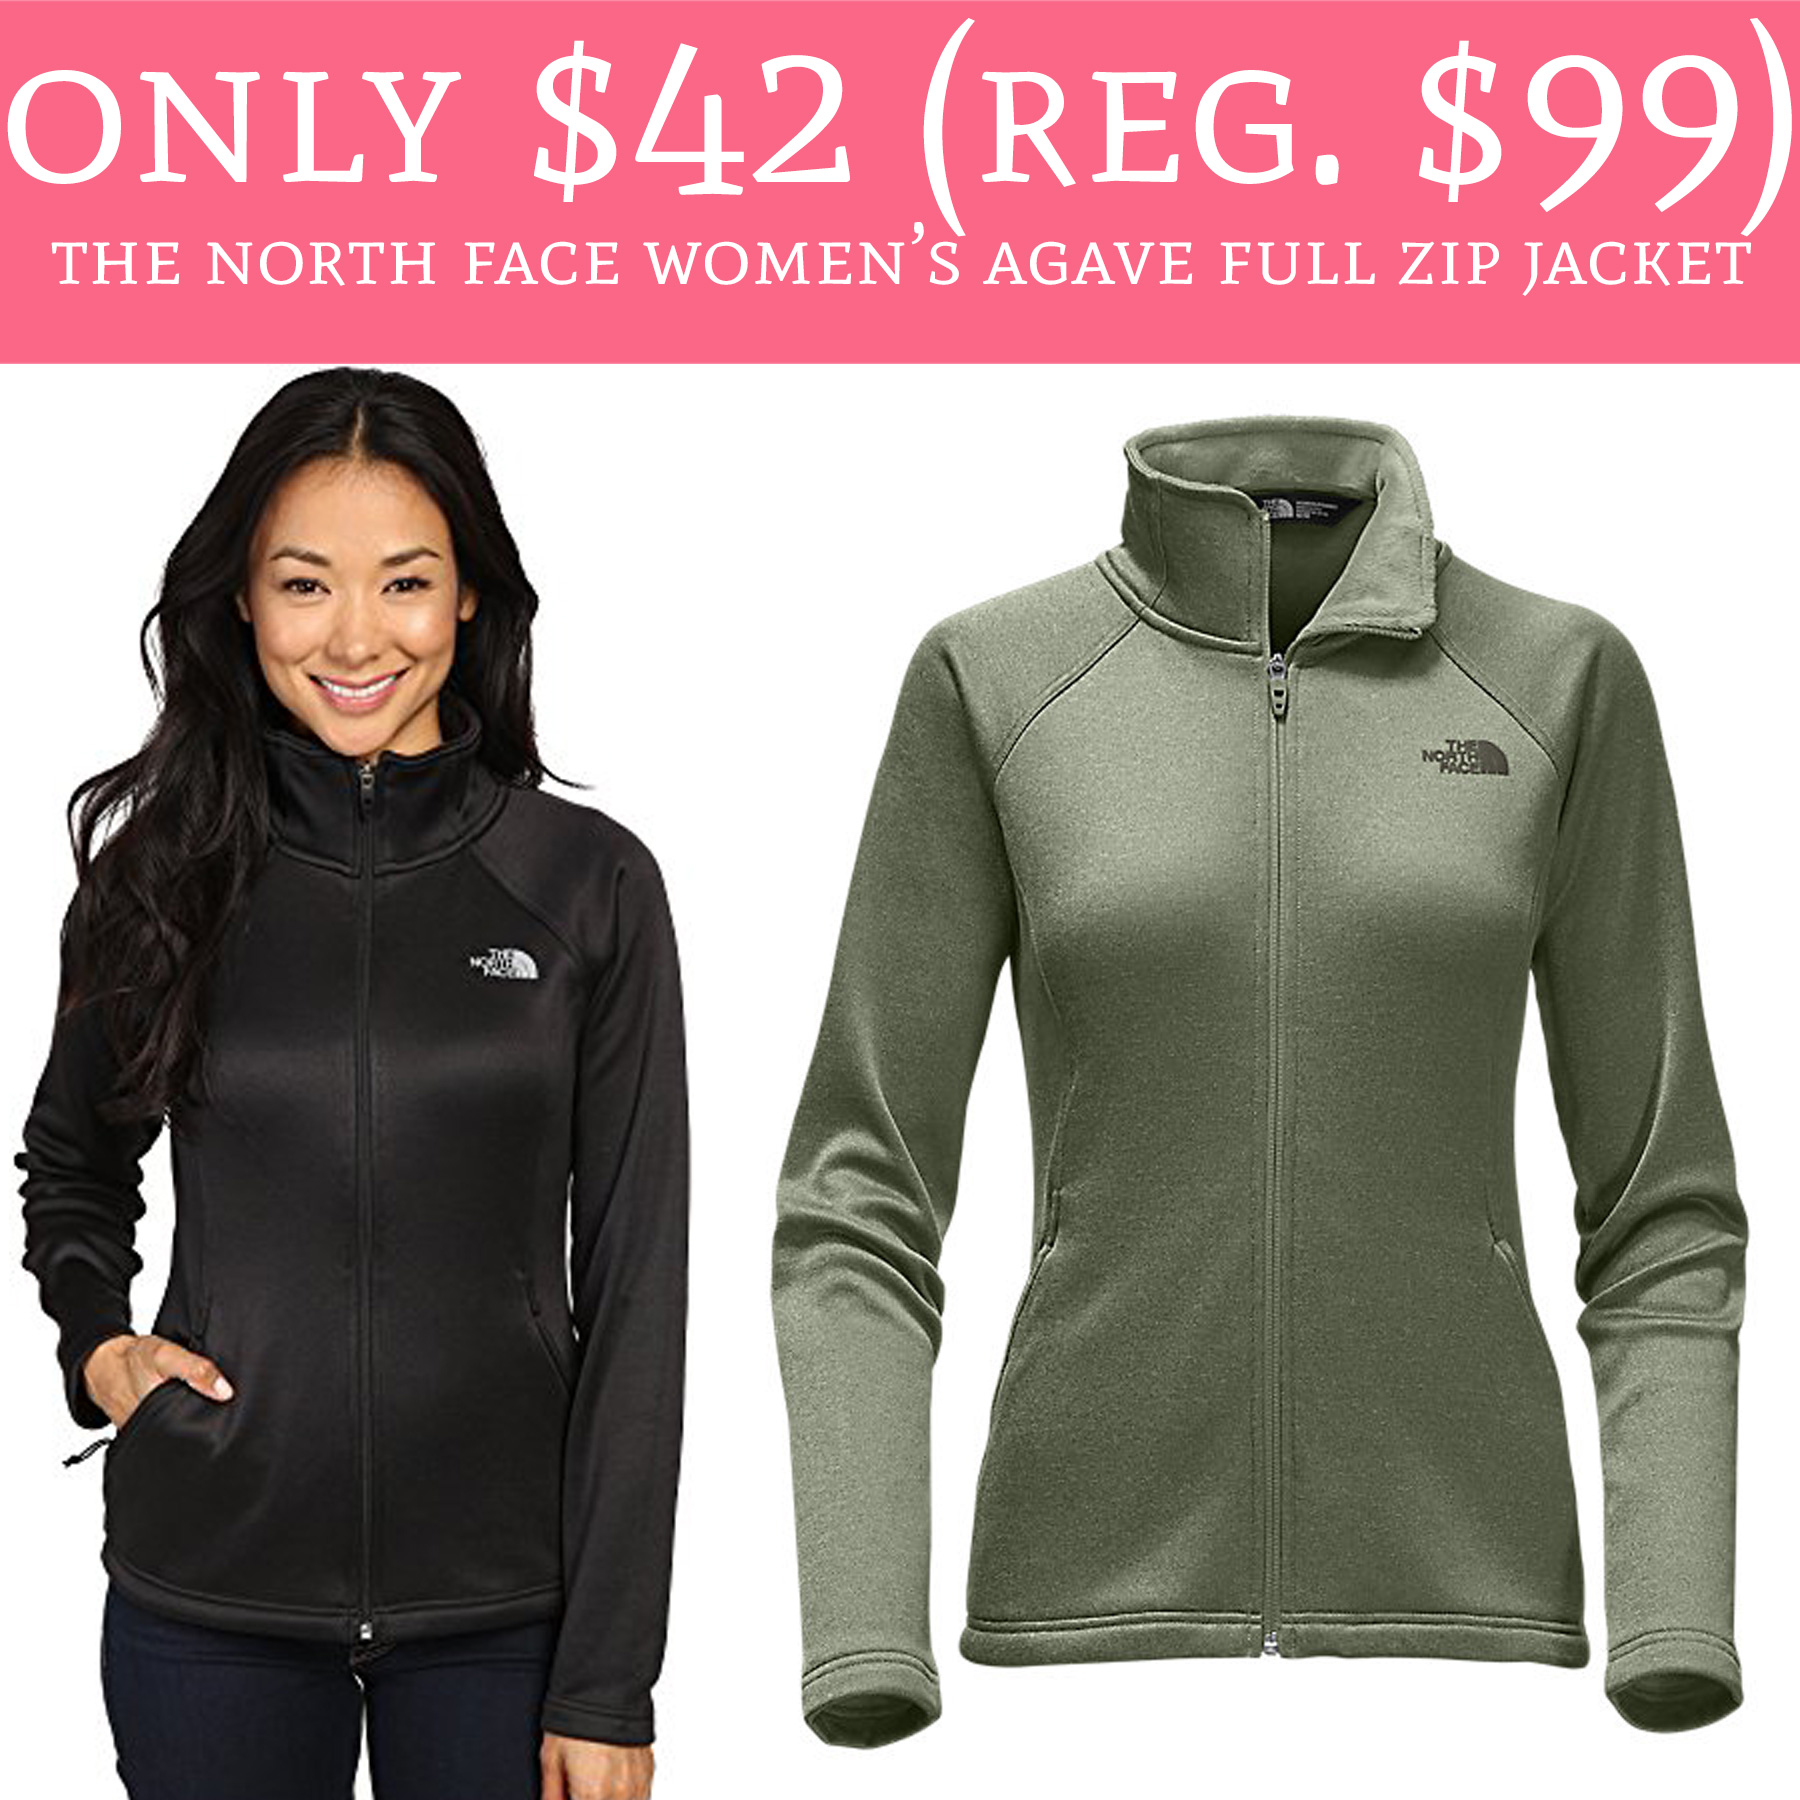 822f8ae07 Only $42 (Regular $99) The North Face Women's Agave Full Zip Jacket ...